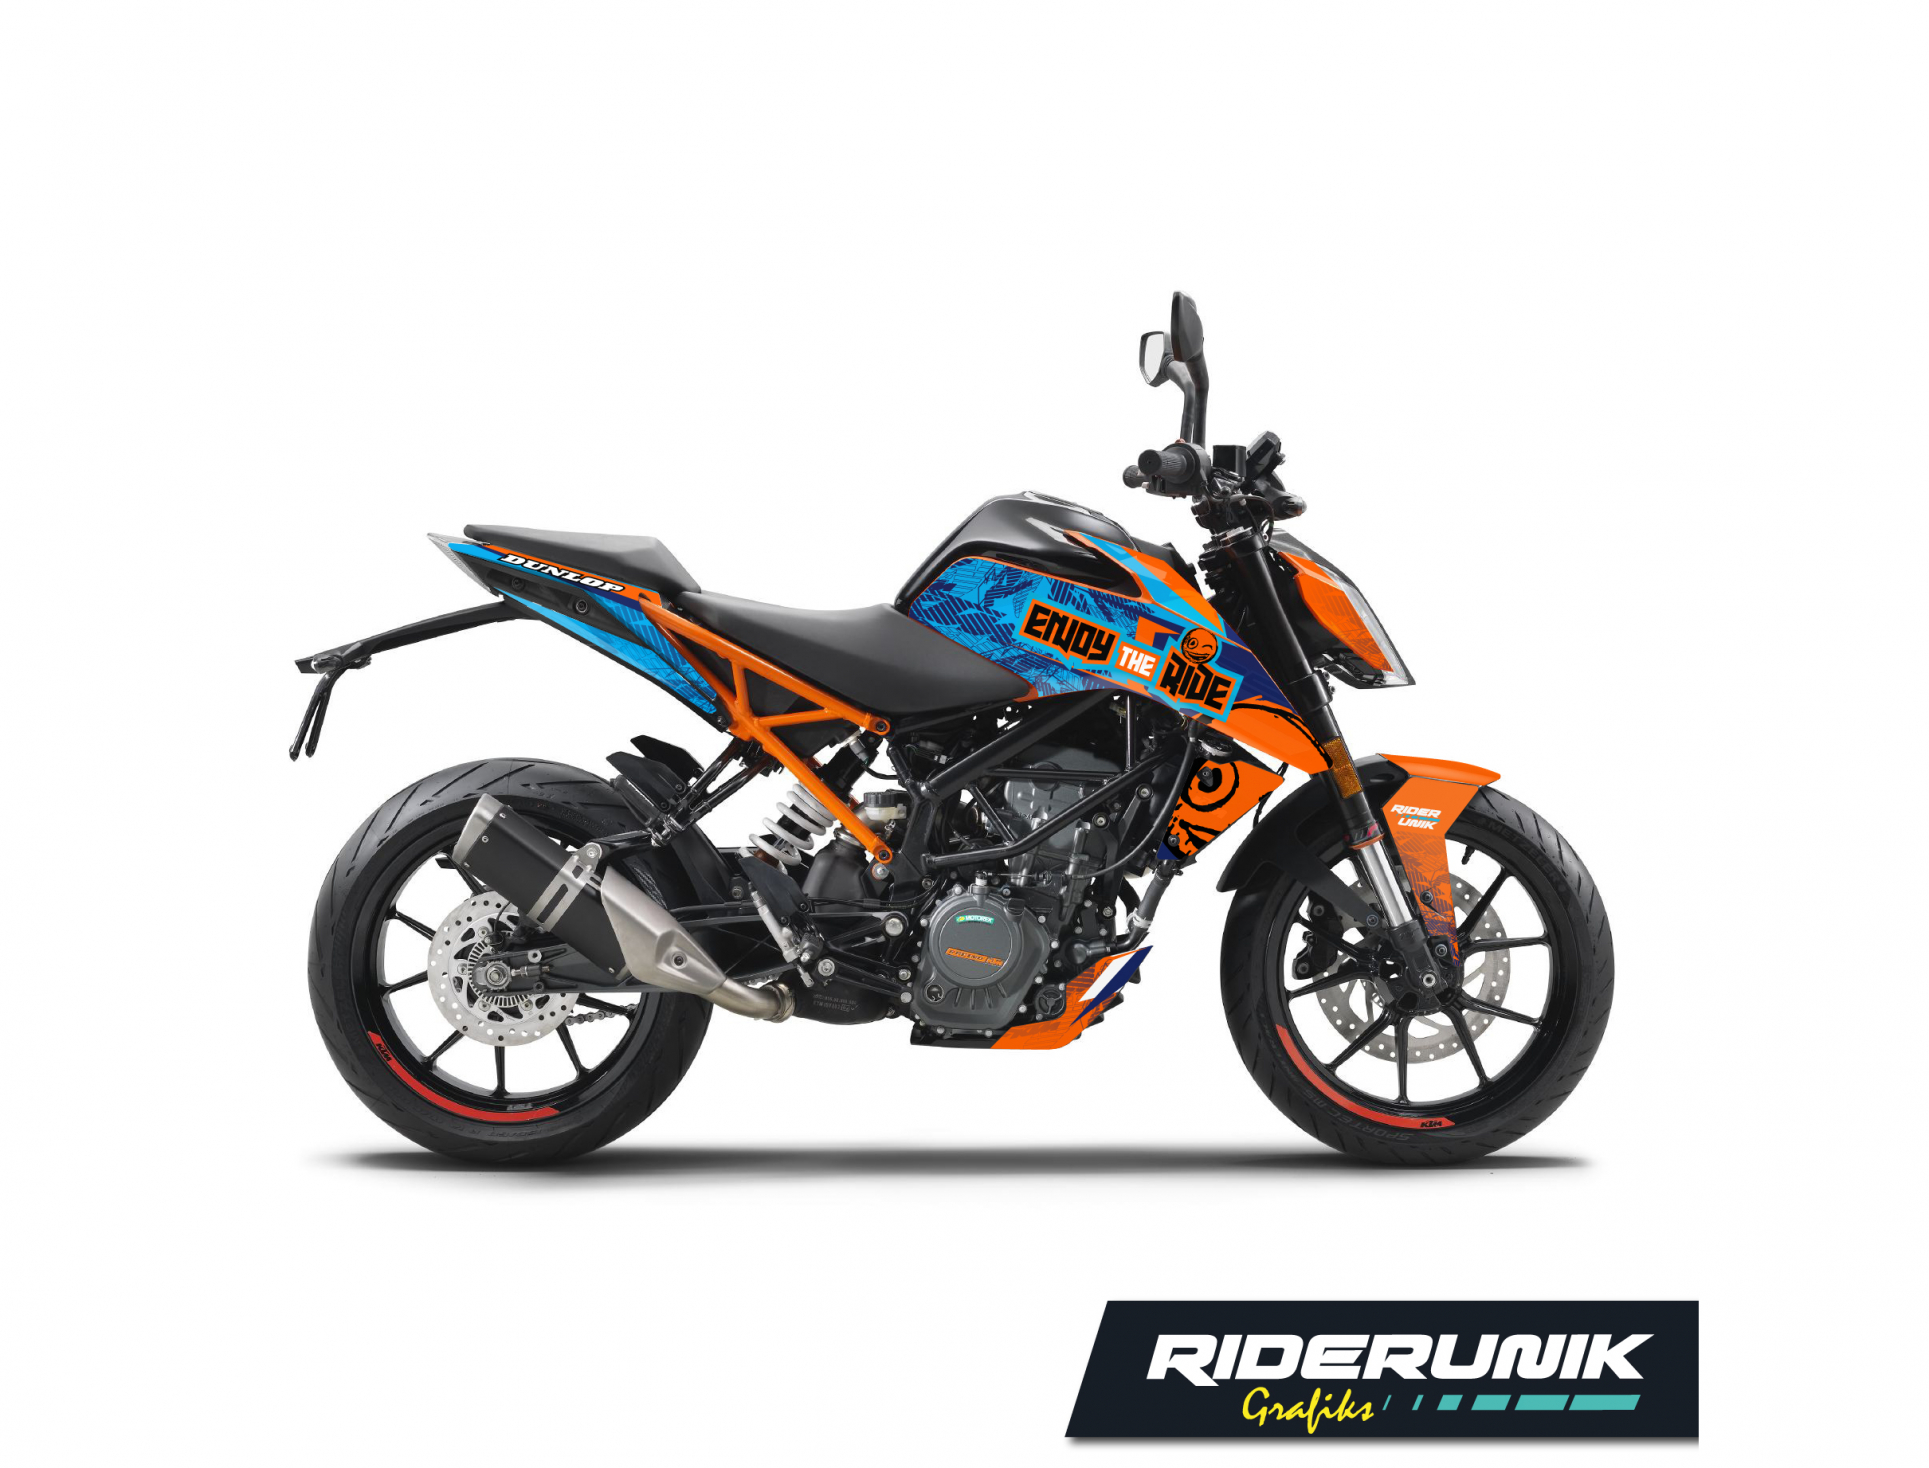 KIT DECO KTM DUKE ENJOY THE RIDE